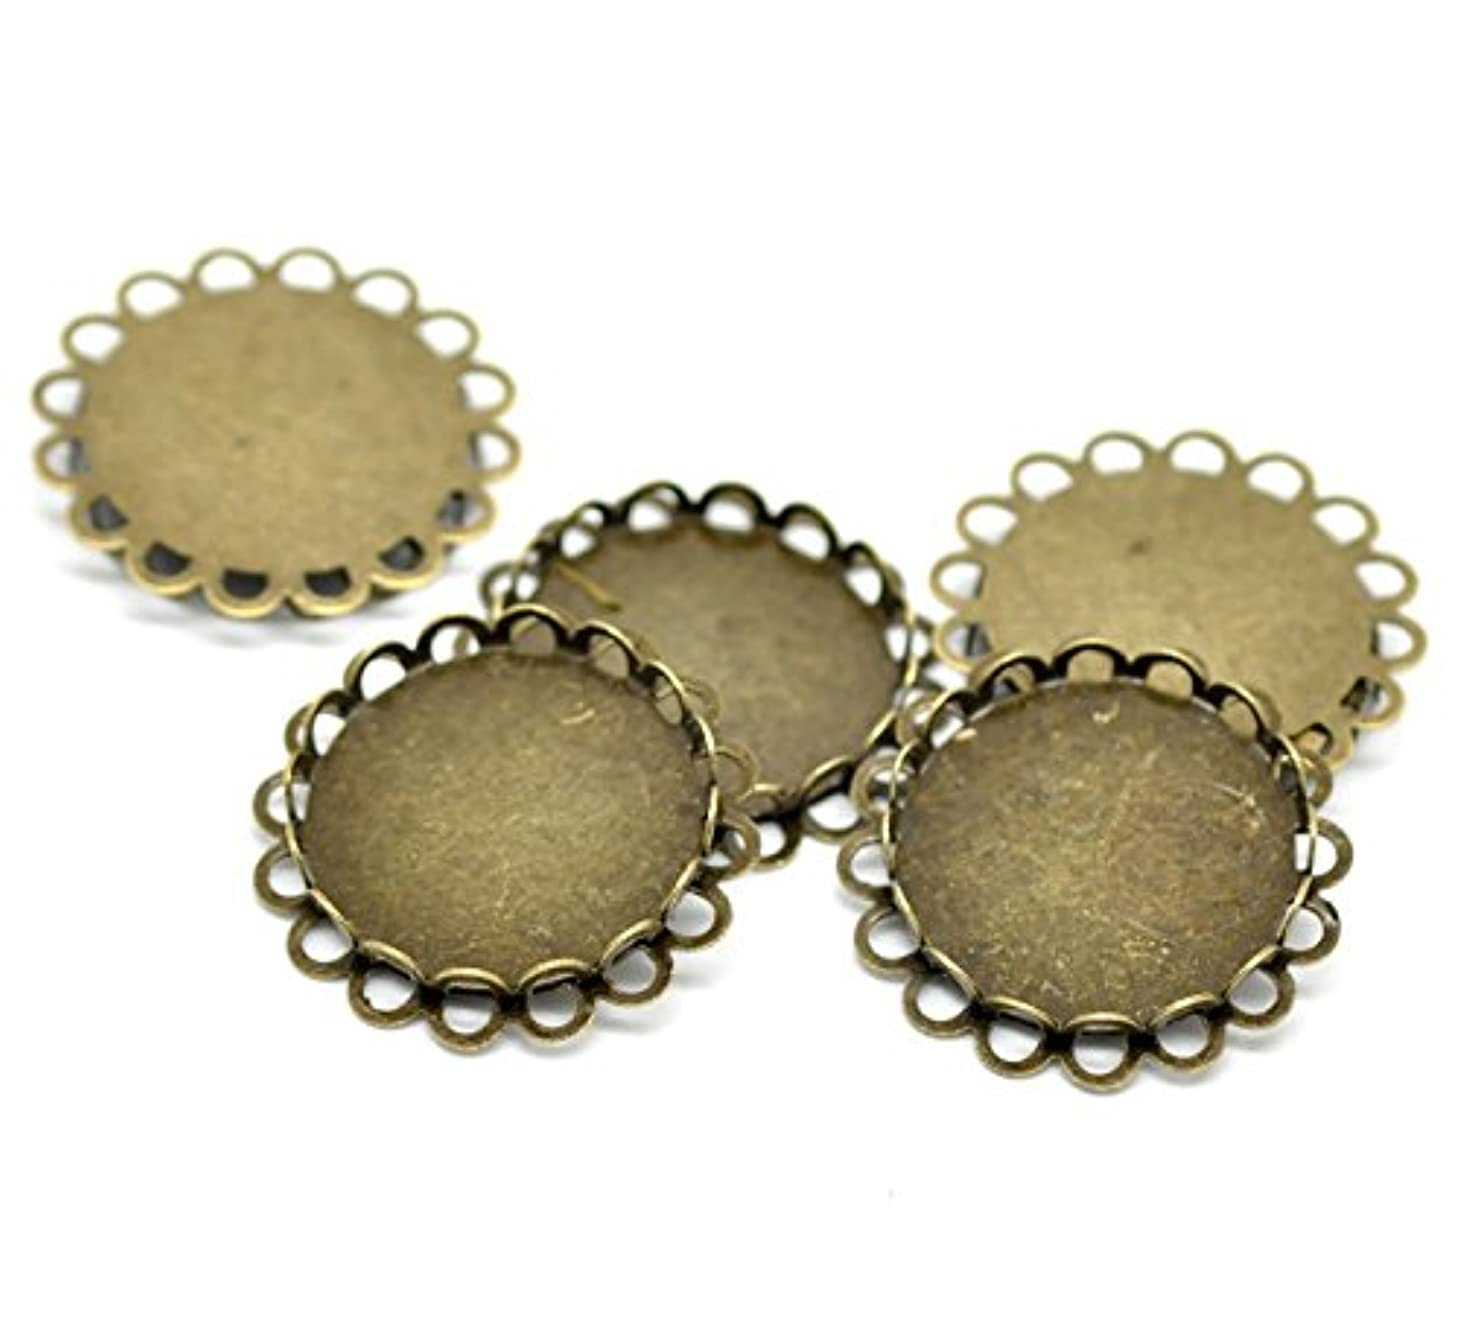 PEPPERLONELY Brand 20PC Antique Bronze Round Cabochon Frame Settings 32mm Fit 25mm